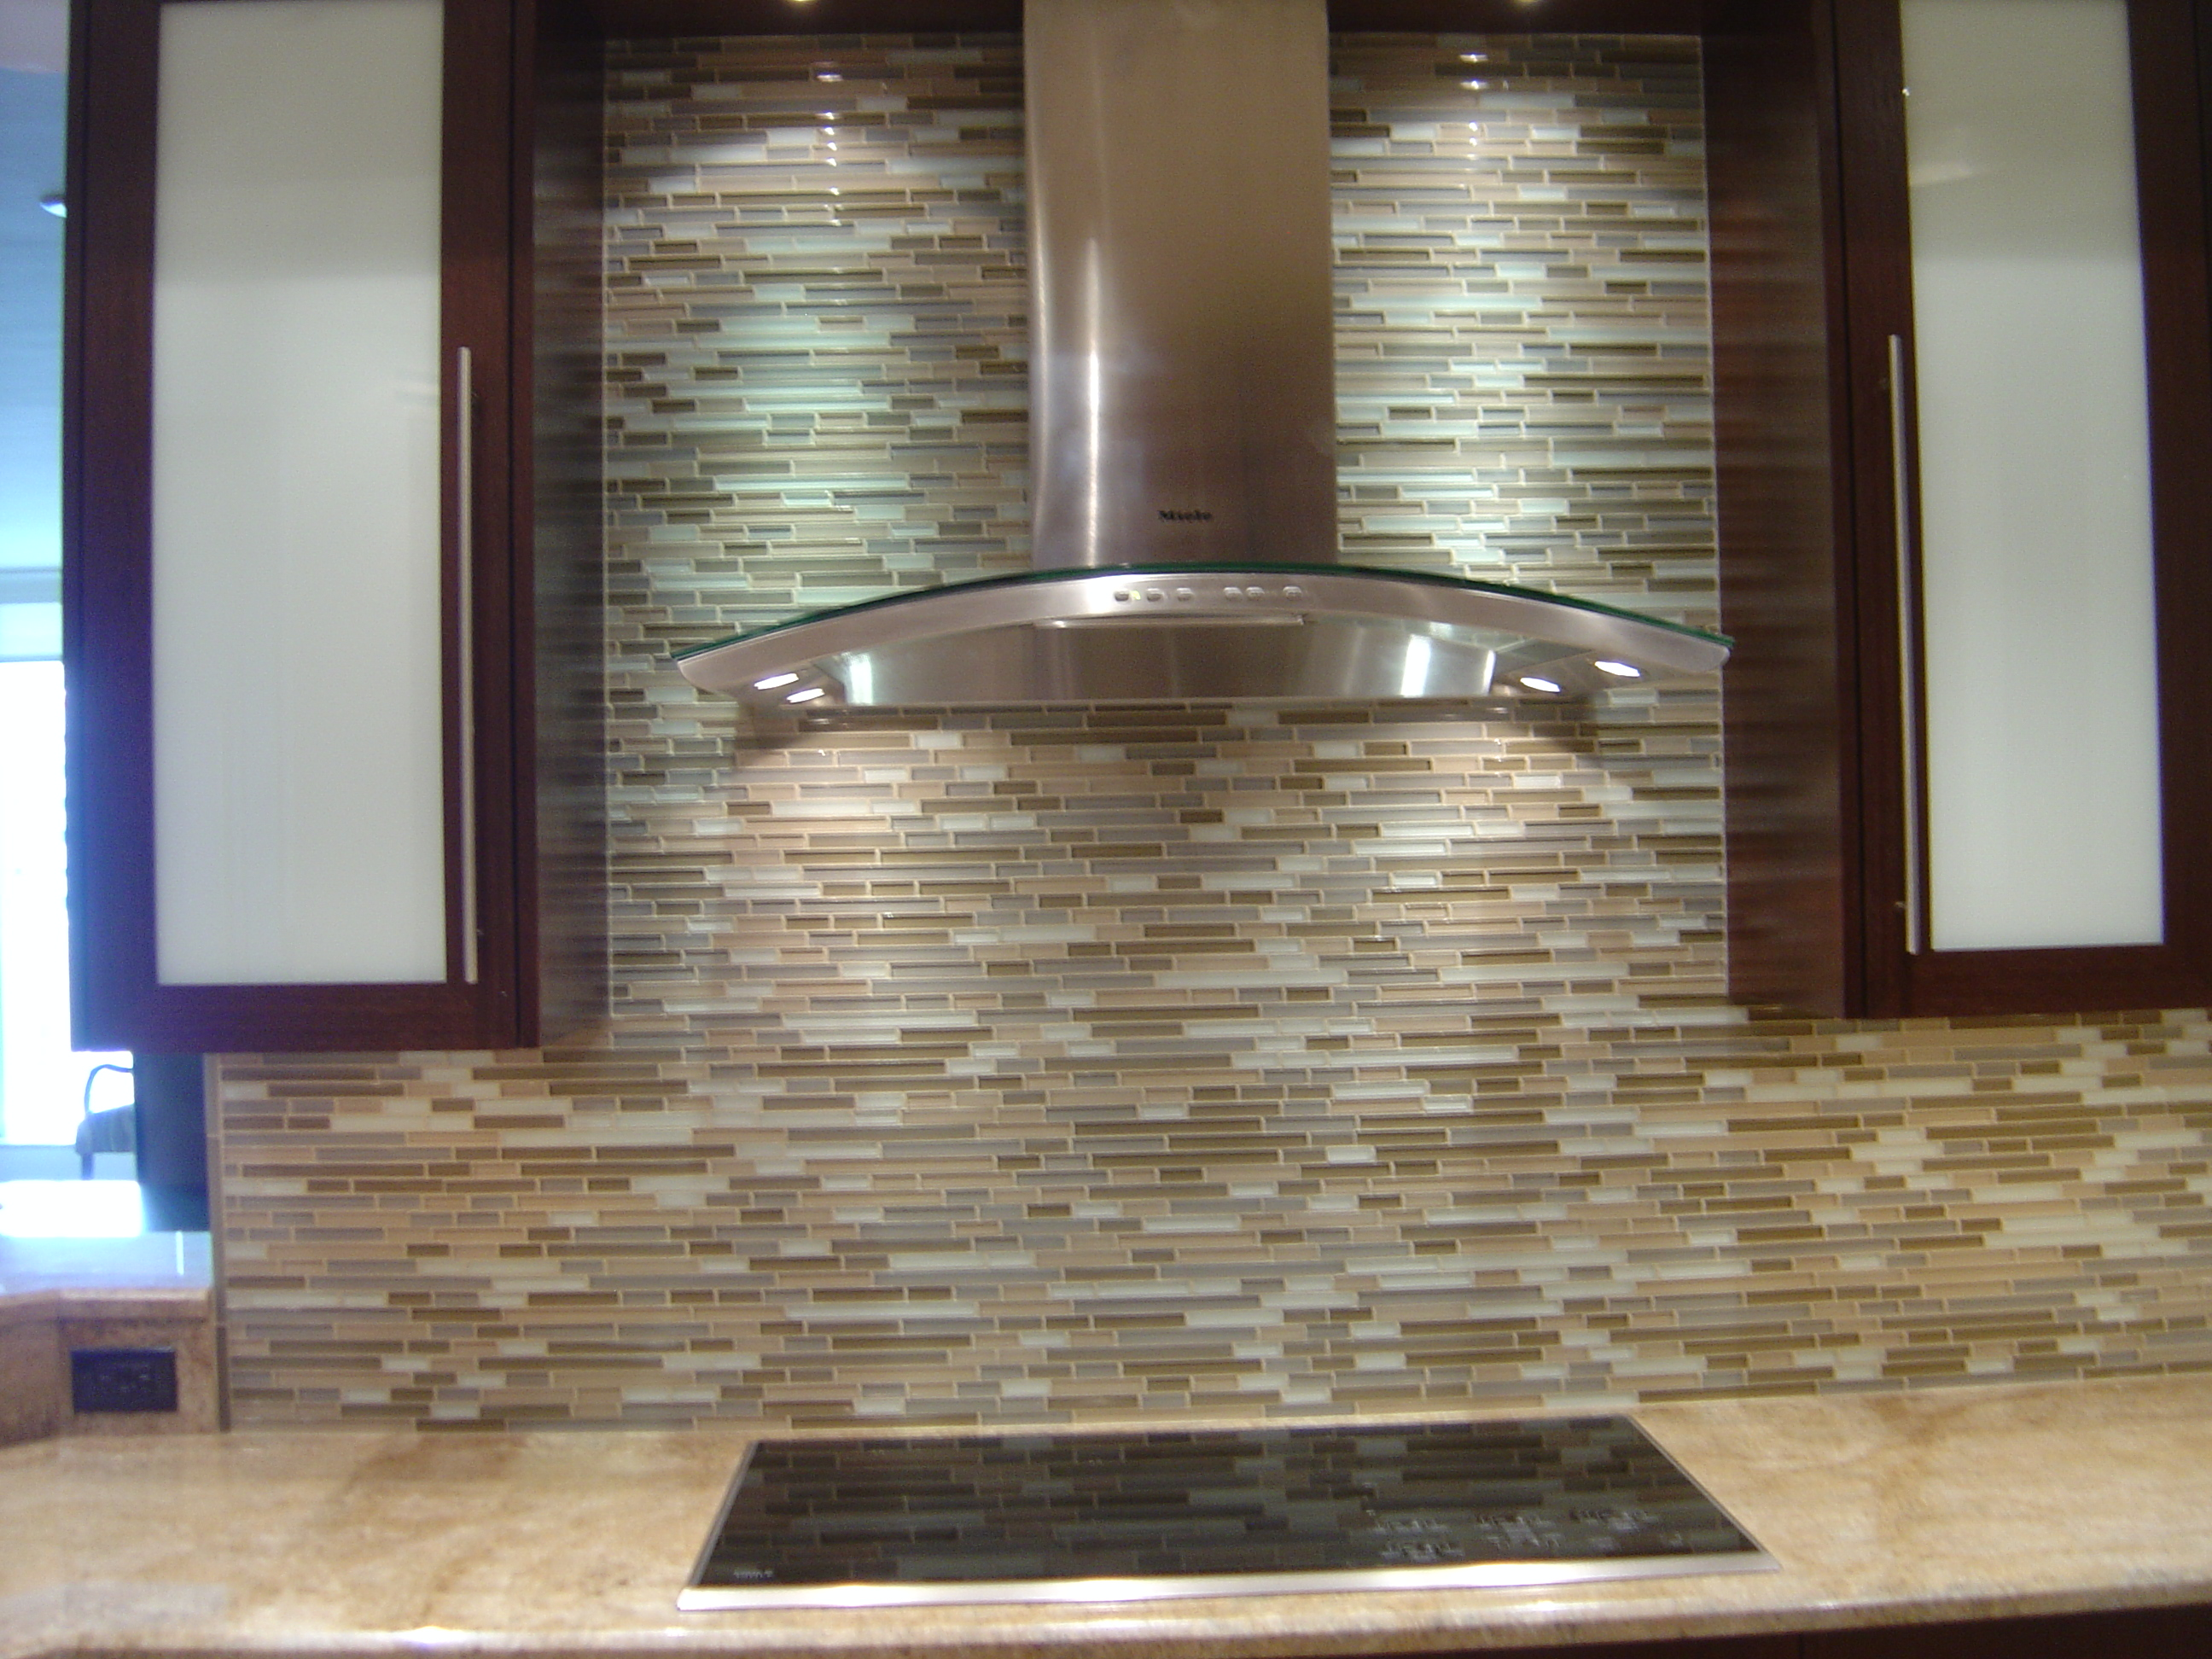 Backsplash19